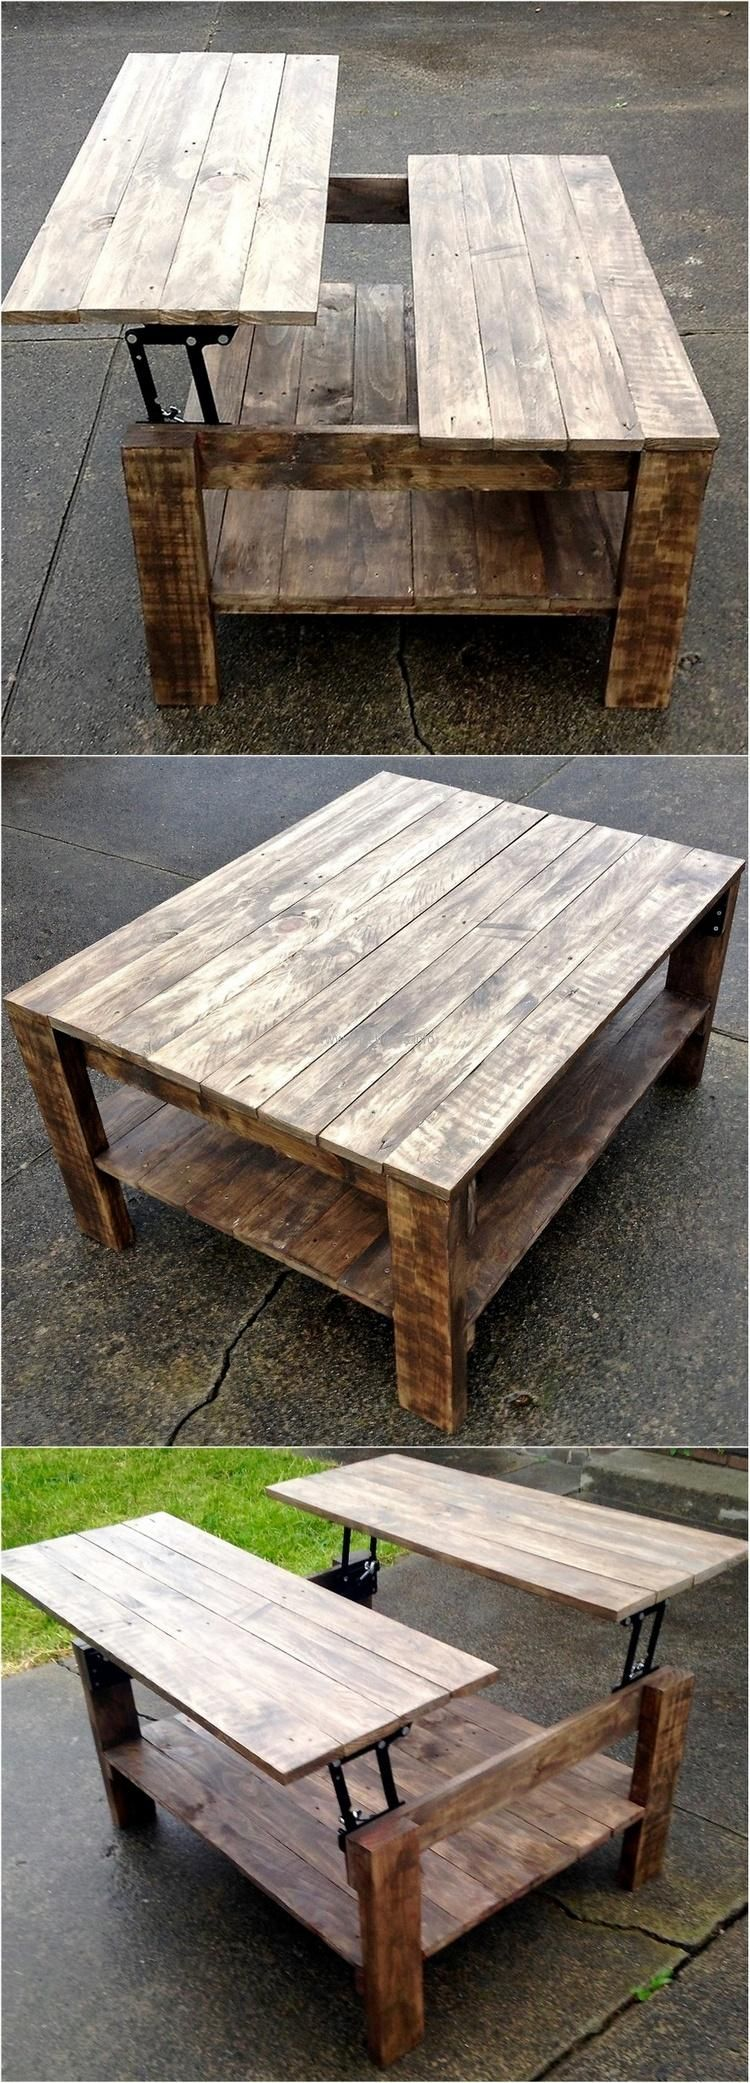 Ingenious ideas for wooden pallet reusing pallets woodworking and